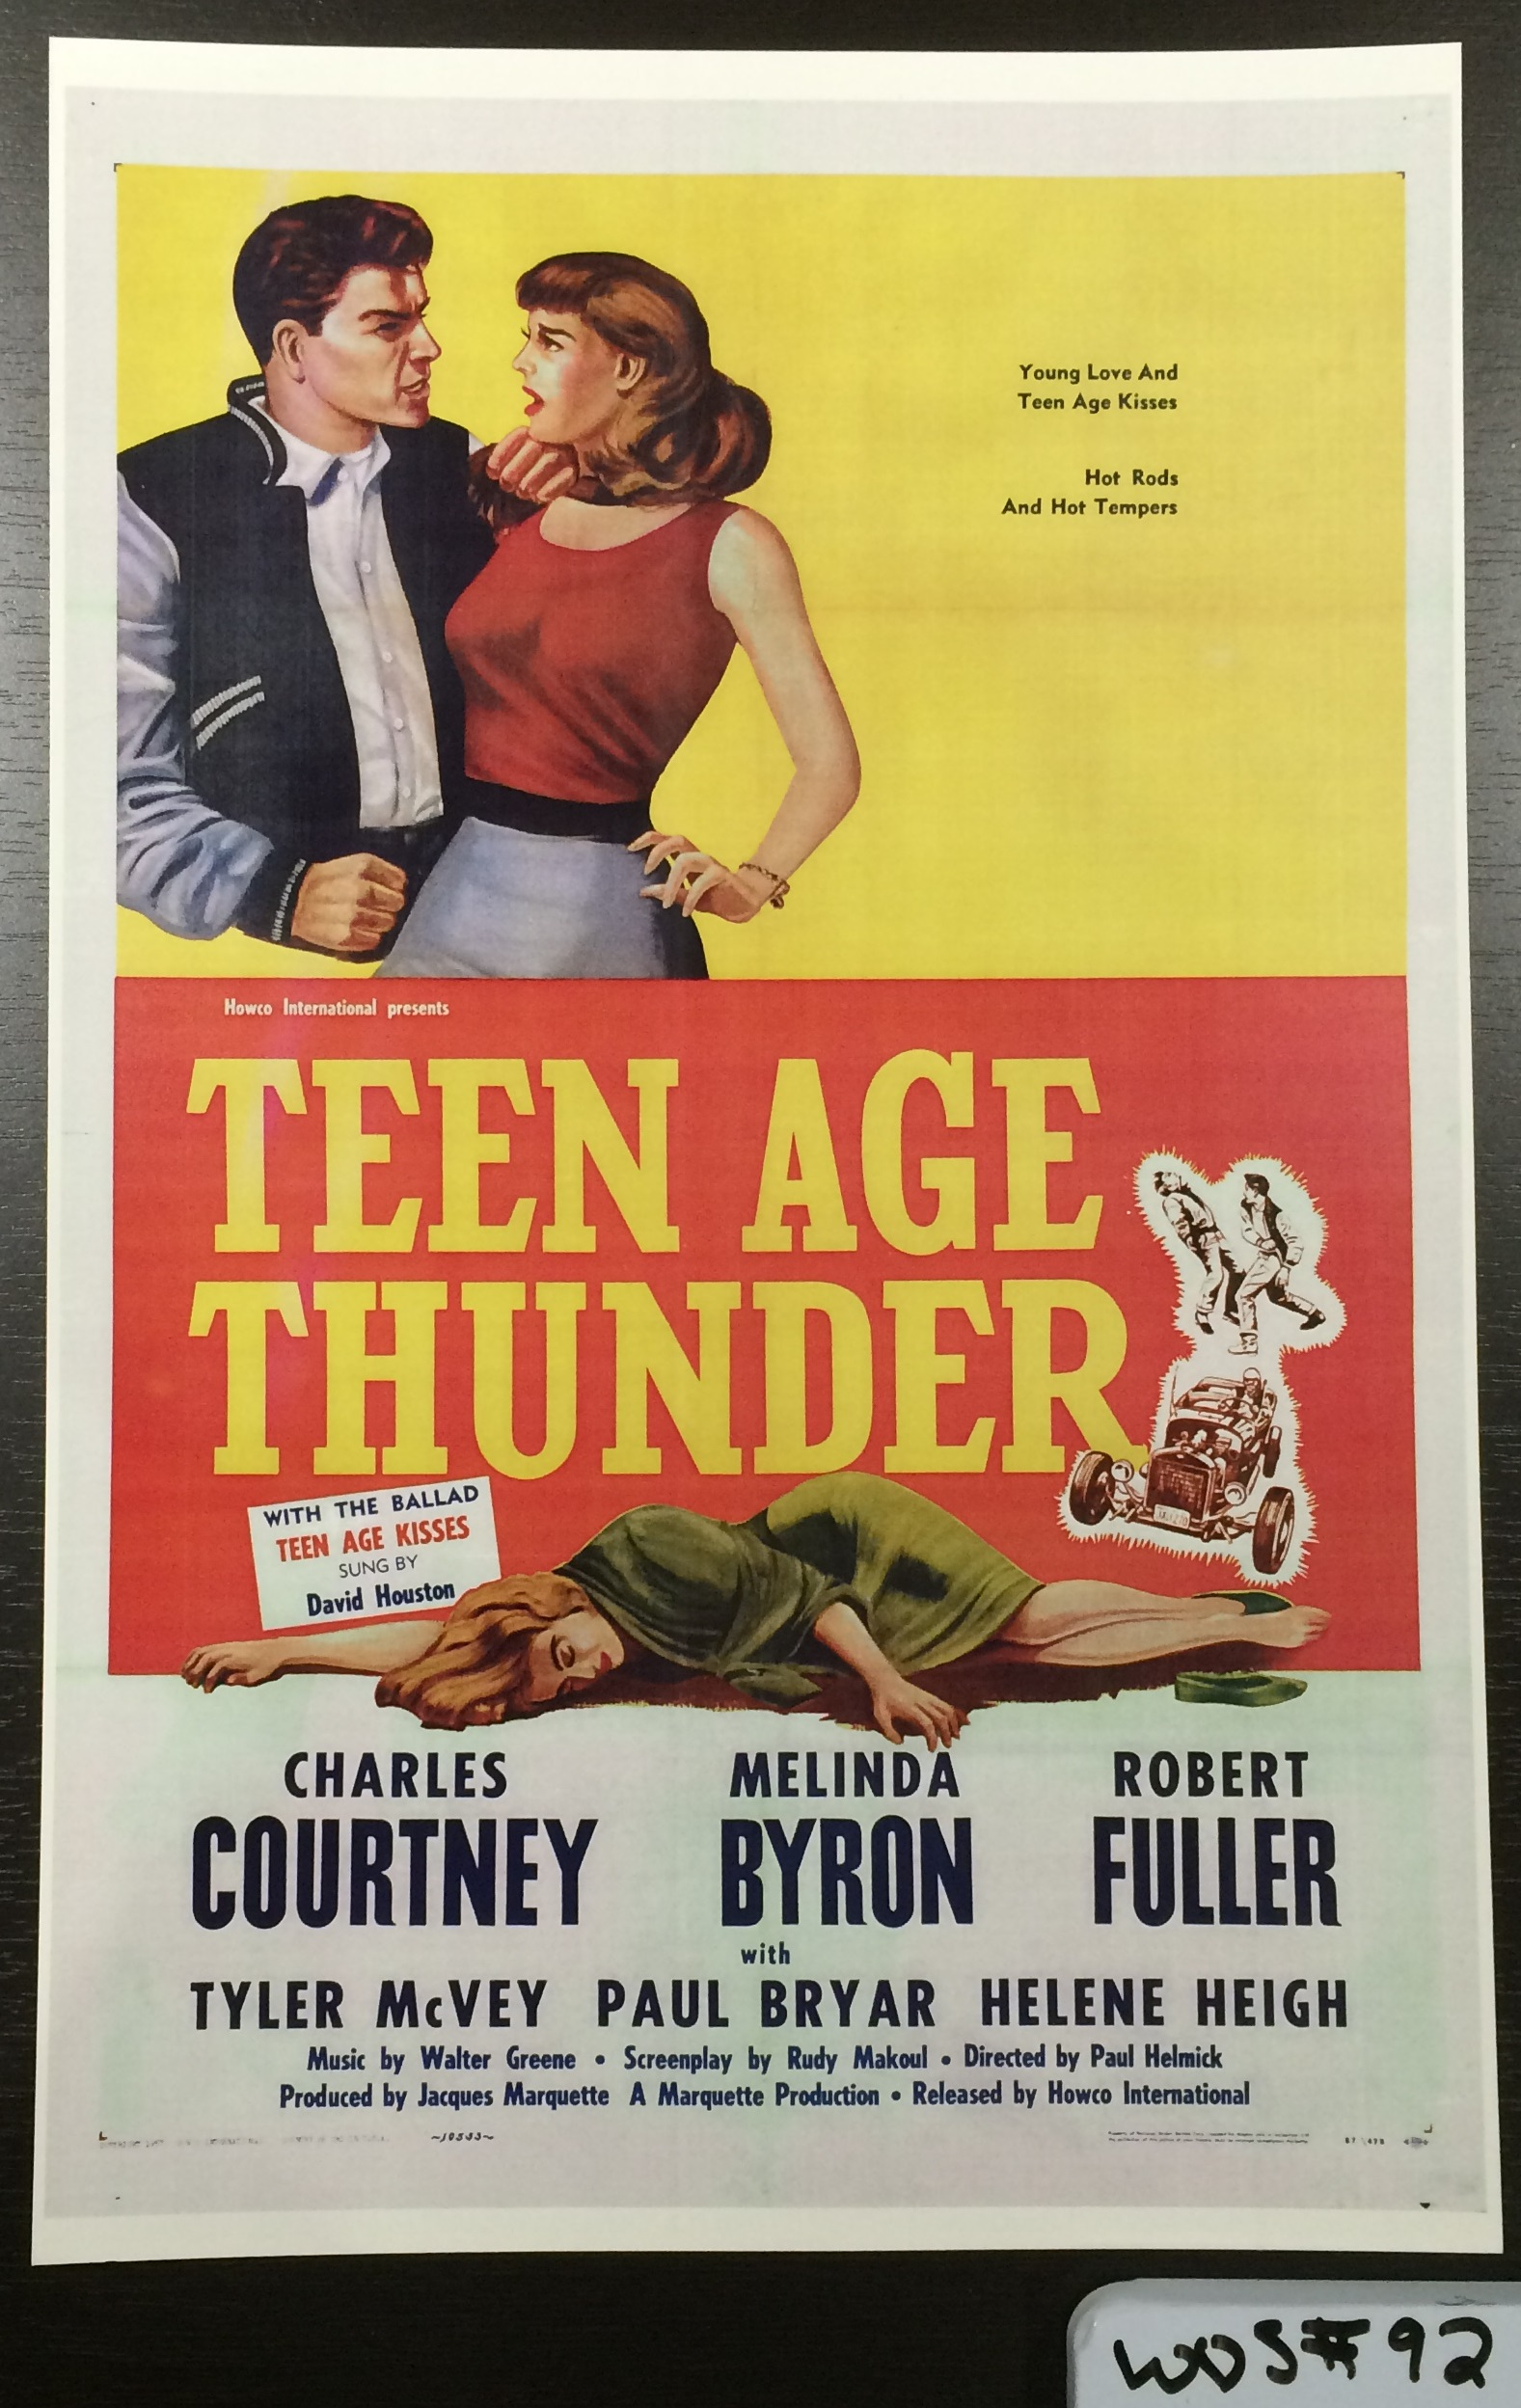 Reprint of Teen Age Thunder 1957 movie poster, WOS#92